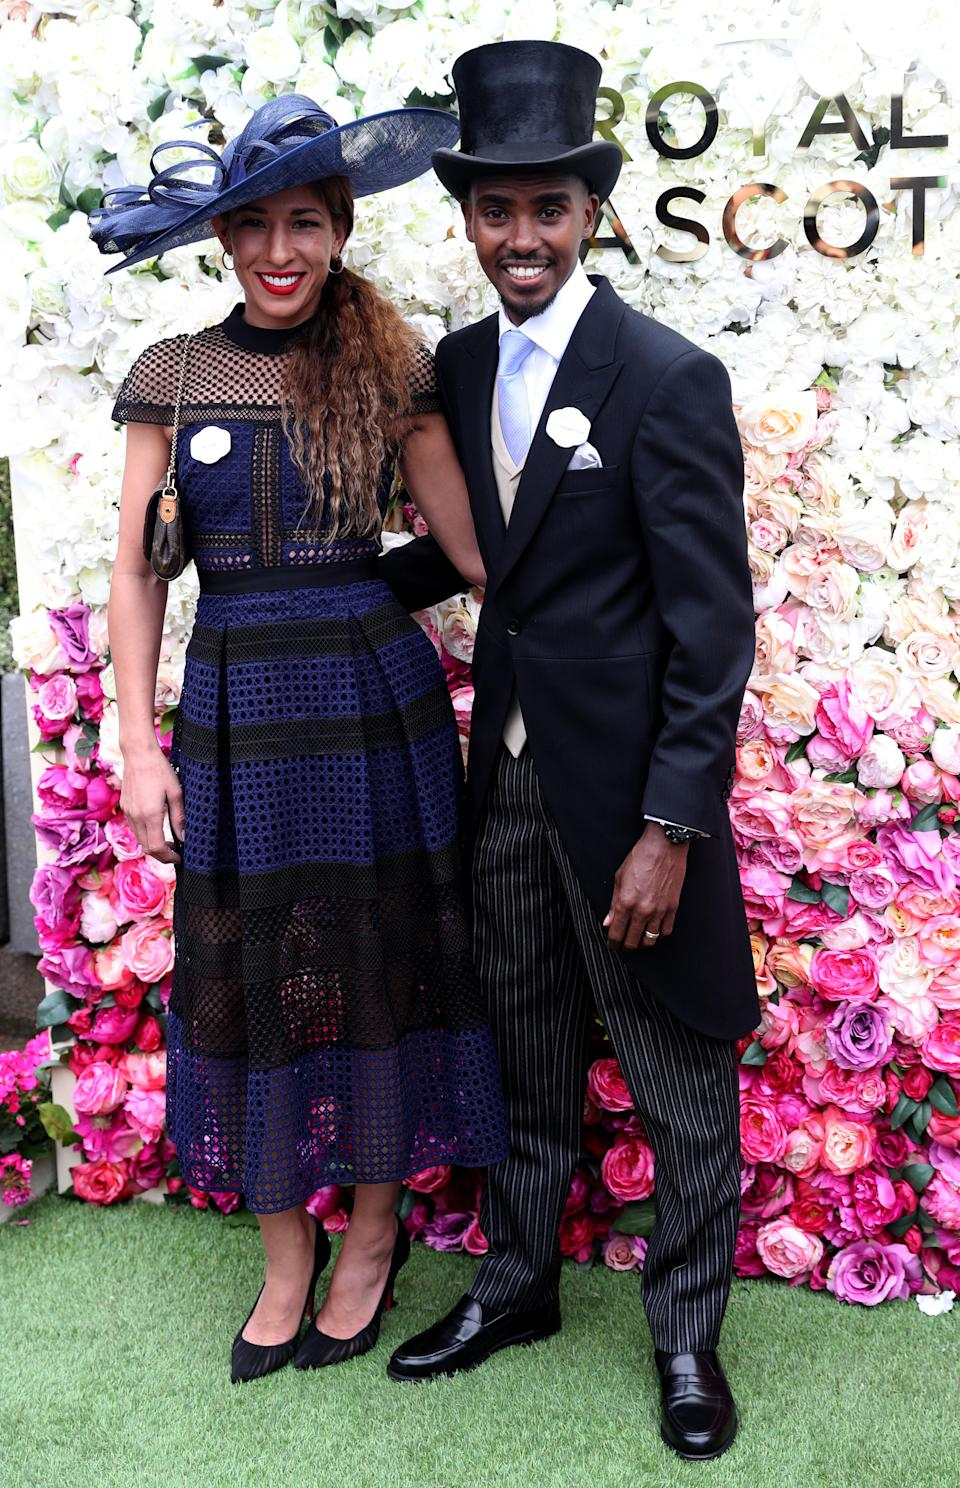 <p>Mo Farah and his wife, Tania Bell, attended this year's Royal Ascot. For the prestigious ceremony, Tania played by the rules in a navy-hued dress and co-ordinating hat. Meanwhile, Farah looked dapper in a top hat and morning suit. <em>[Photo: PA]</em> </p>